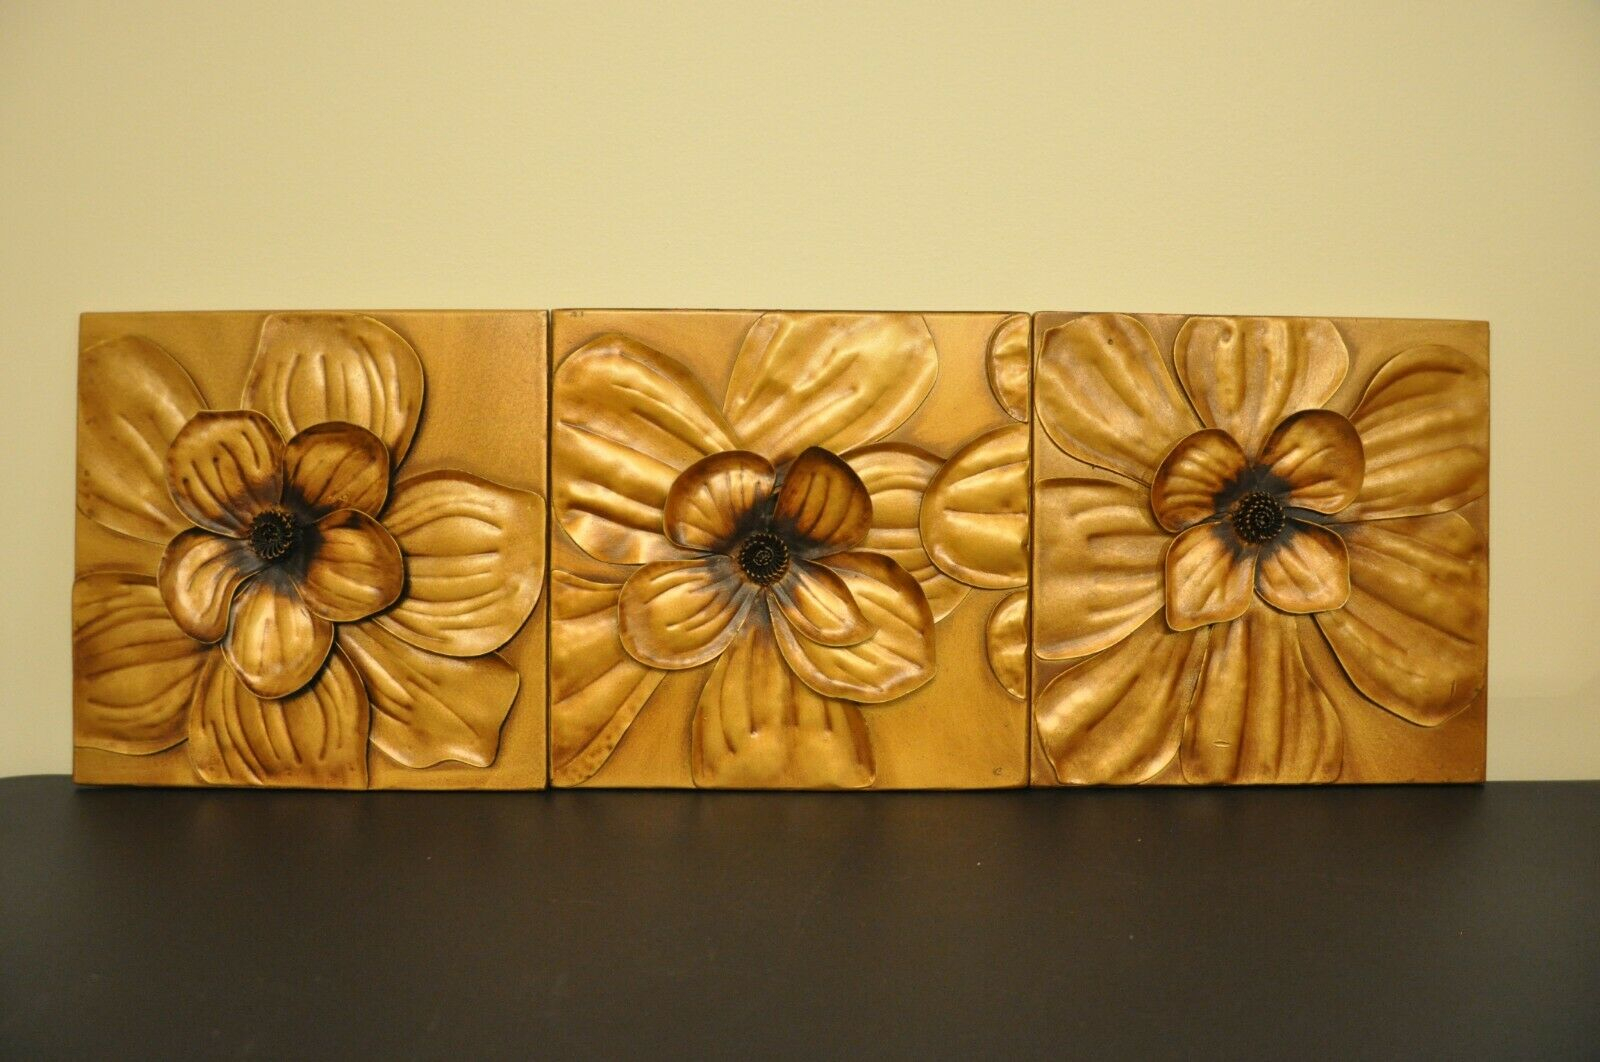 Southern Enterprises Magnolia Wall Panel 3Pc Set - Gold pertaining to 3 Piece Magnolia Brown Panel Wall Decor Sets (Image 27 of 30)